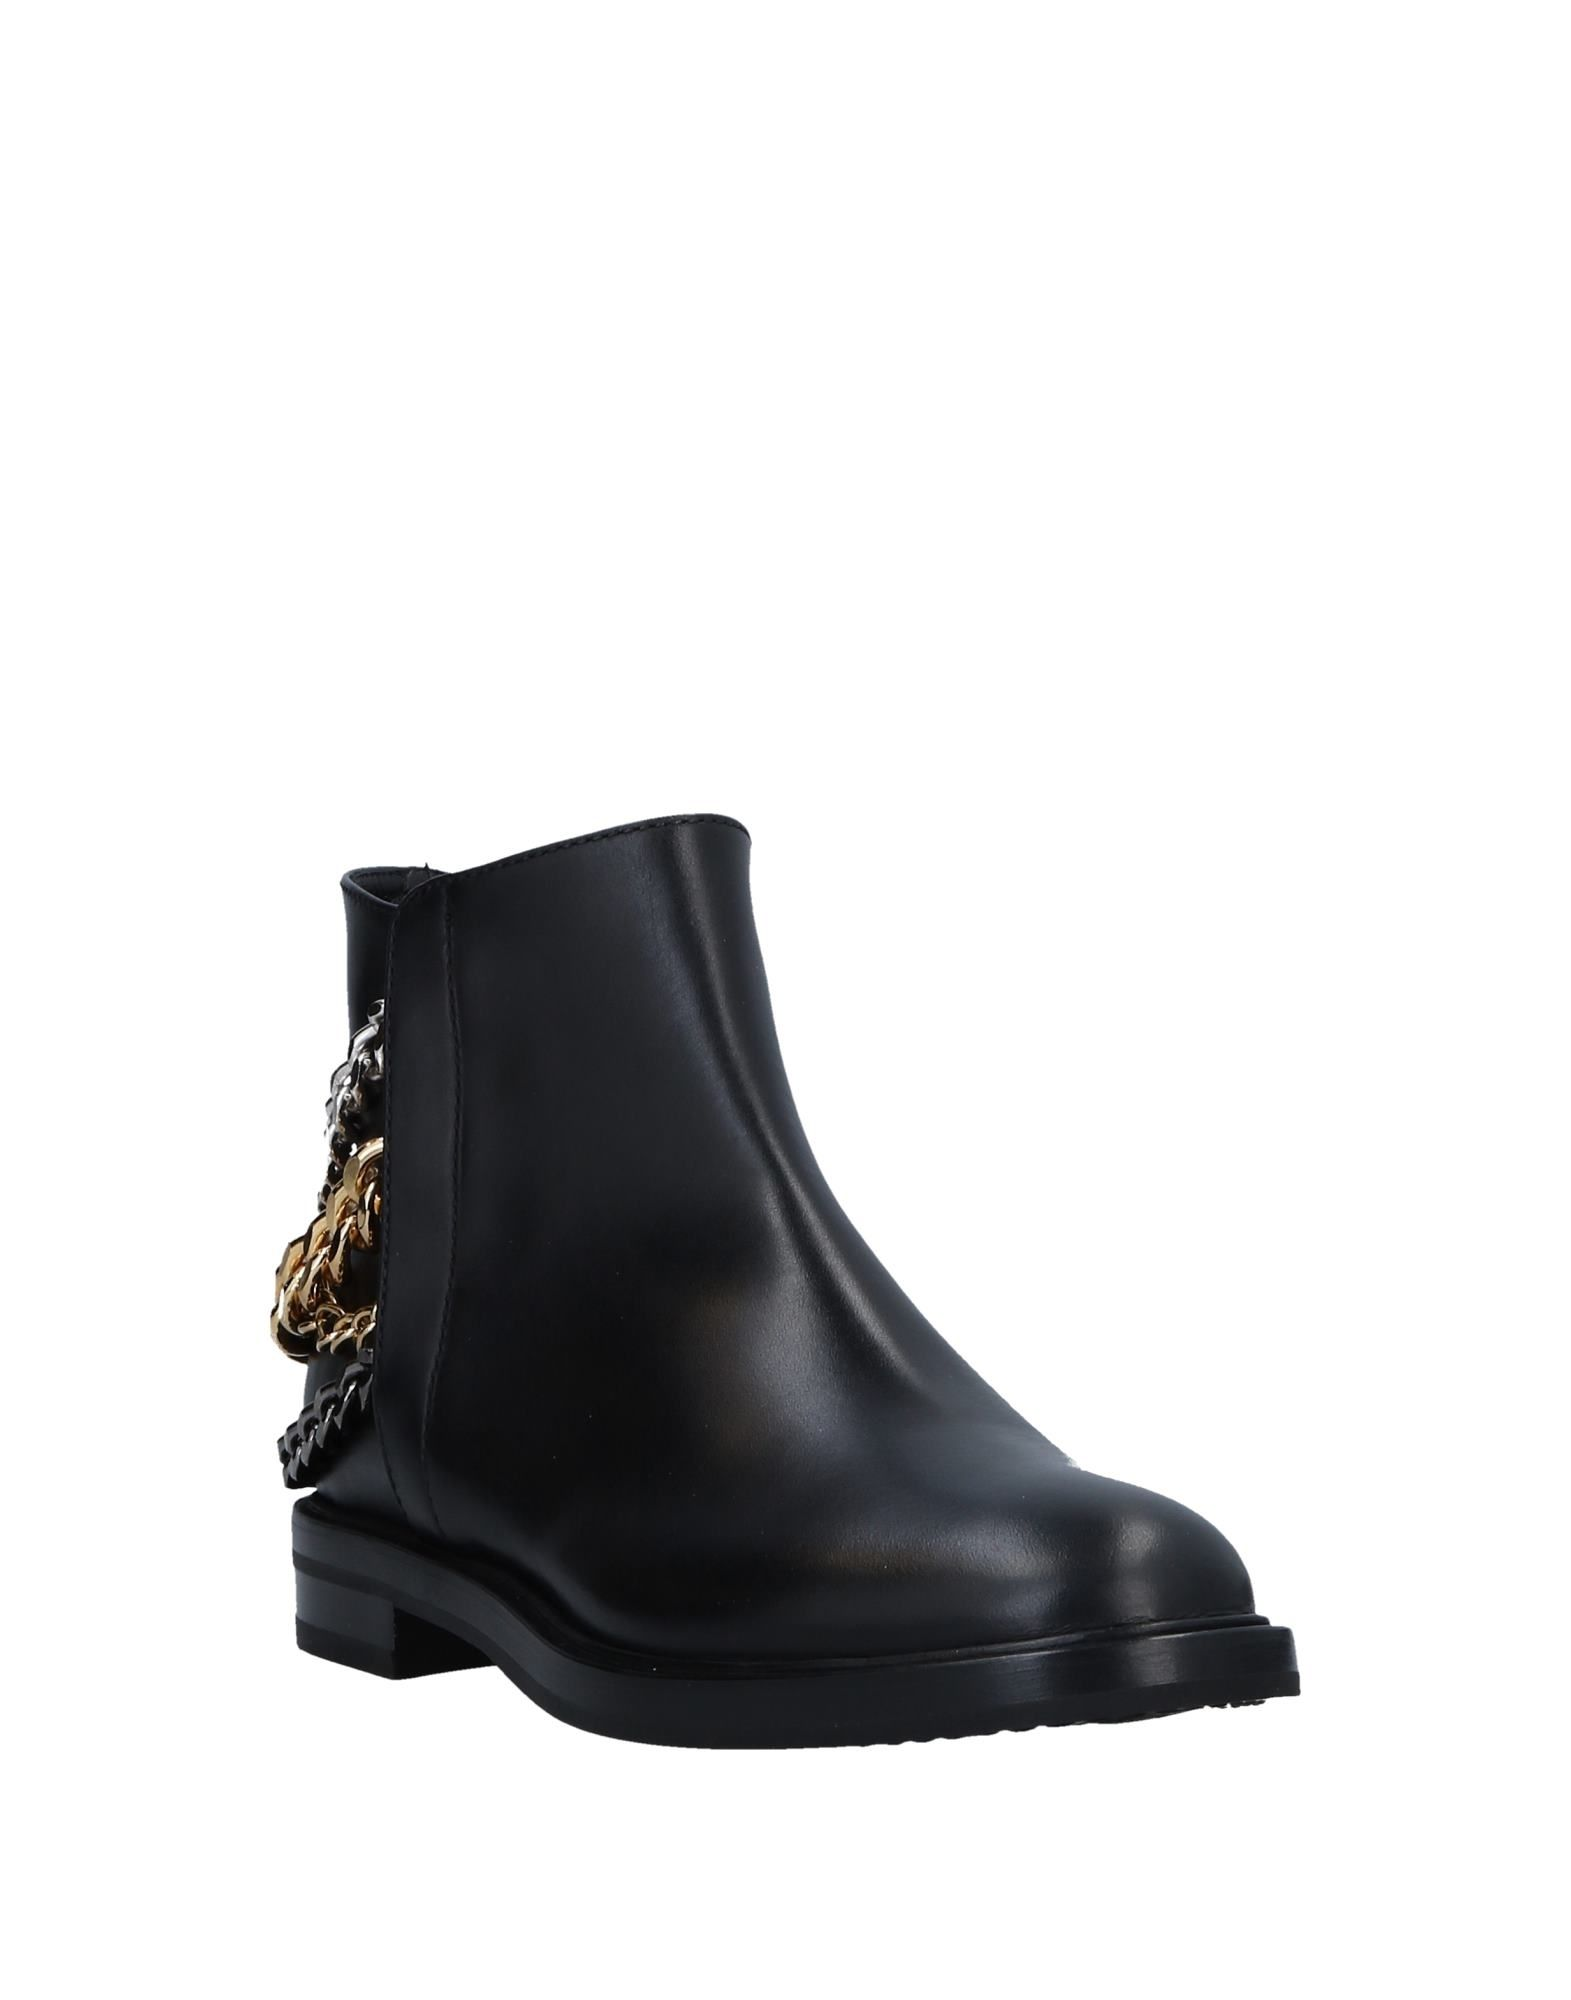 Casadei Casadei Casadei Ankle Boot - Women Casadei Ankle Boots online on  Canada - 11544311EF 2698ea